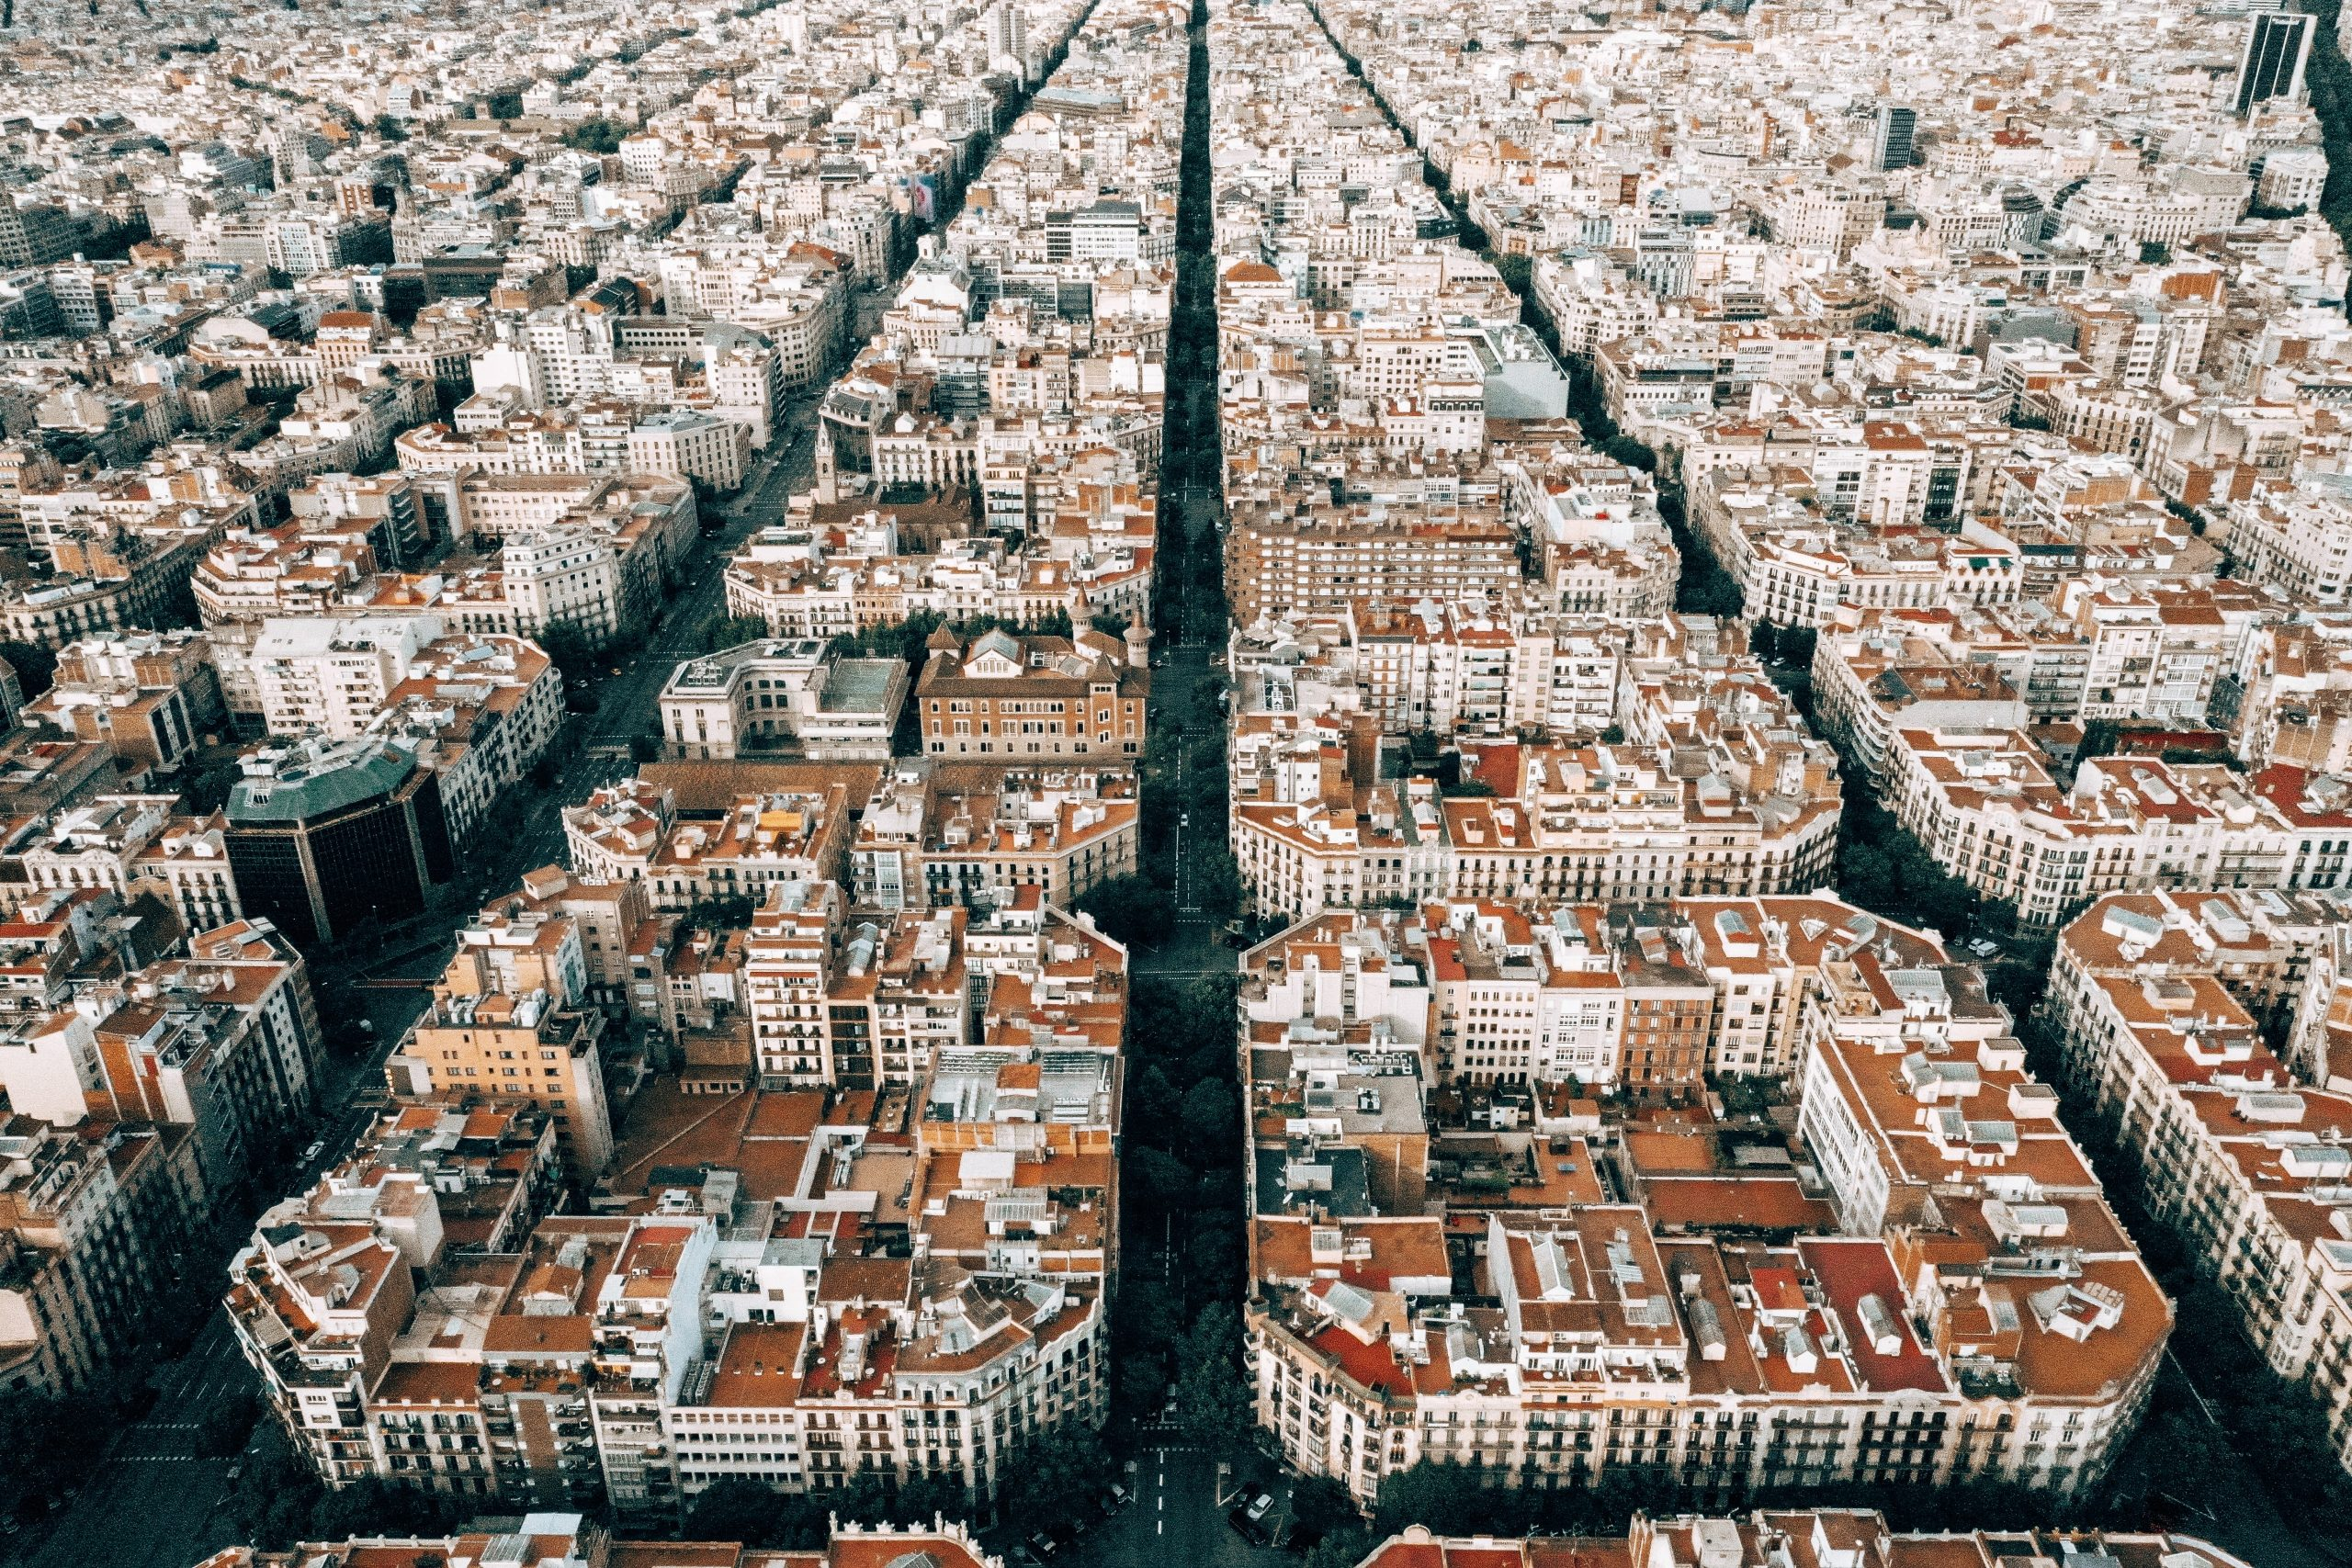 superblocks in barcelona